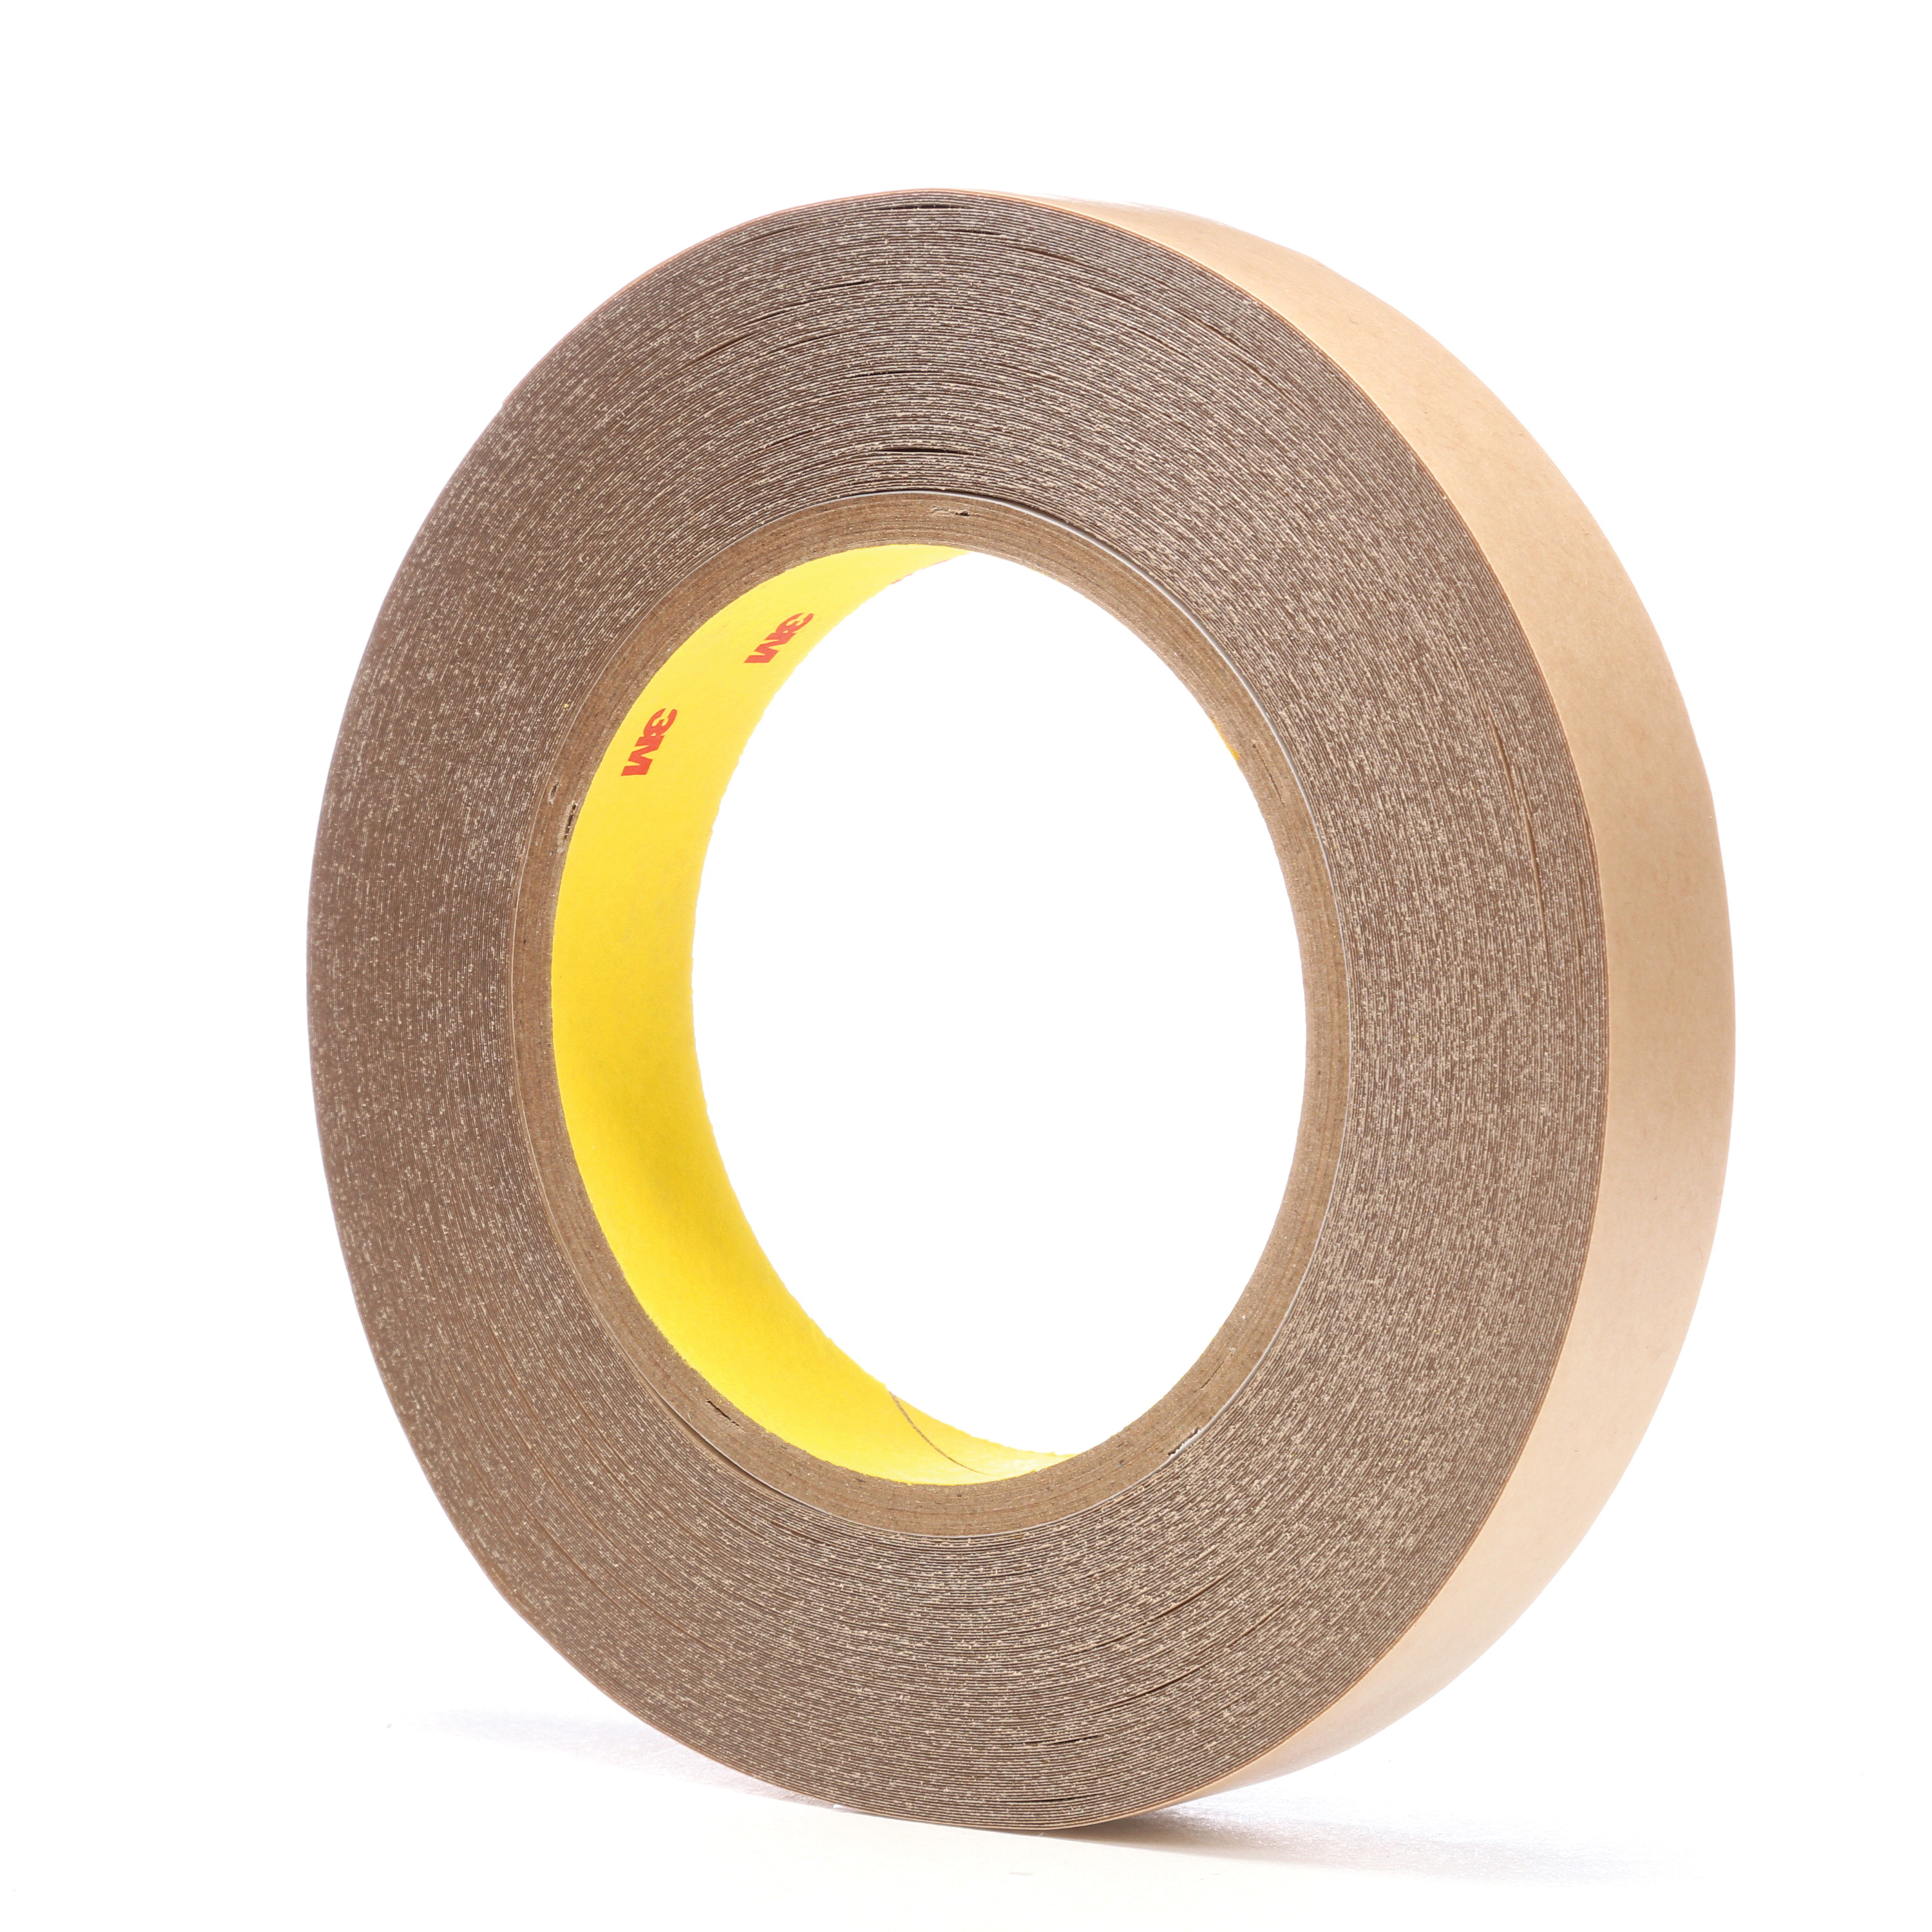 3M™ 021200-67794 Double Coated Tape, 36 yd L x 3/4 in W, 5.6 mil THK, 350 Acrylic Adhesive, Thin Polyester Backing, Clear